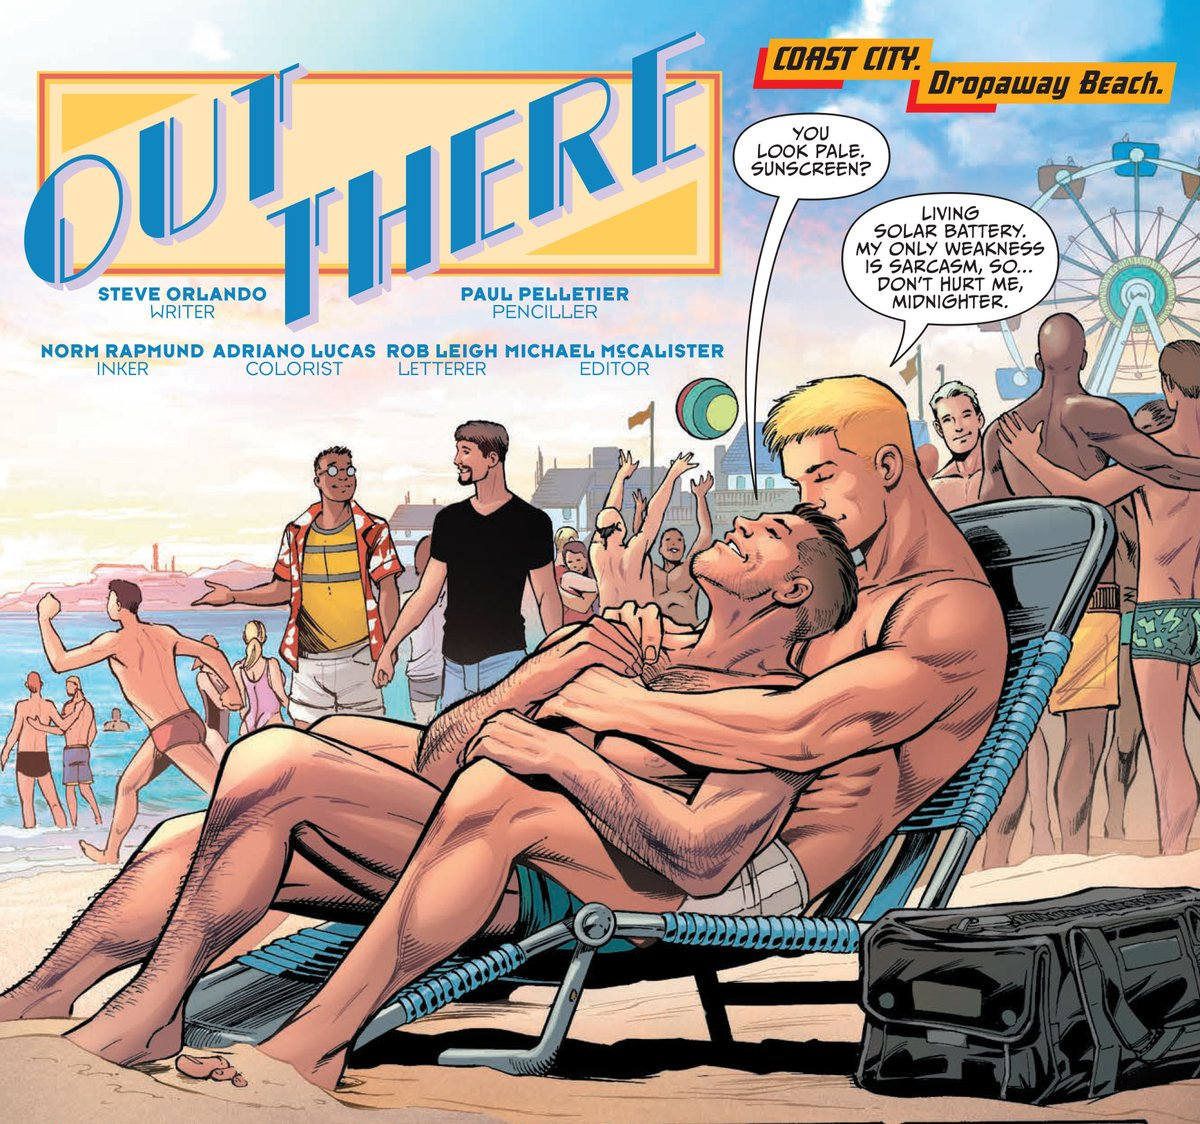 This is what love looks like 💙💛 Visit Coast City #Pride with Apollo and Midnighter in DC CYBERNETIC SUMMER! https://t.co/7erLqJPnh2 https://t.co/8IrTwvMSqC